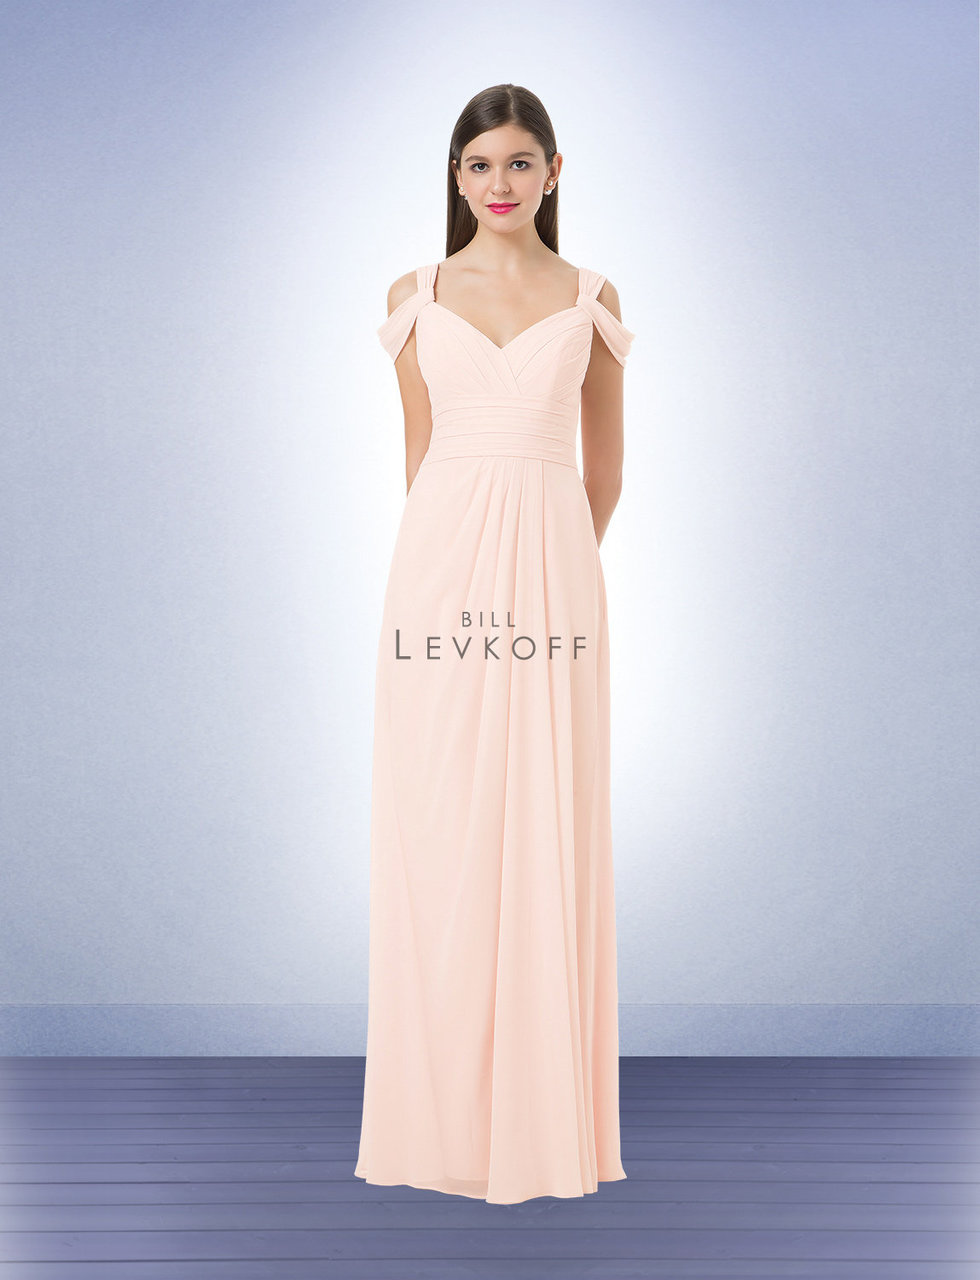 Levkoff bridesmaid dress colors that go with navy